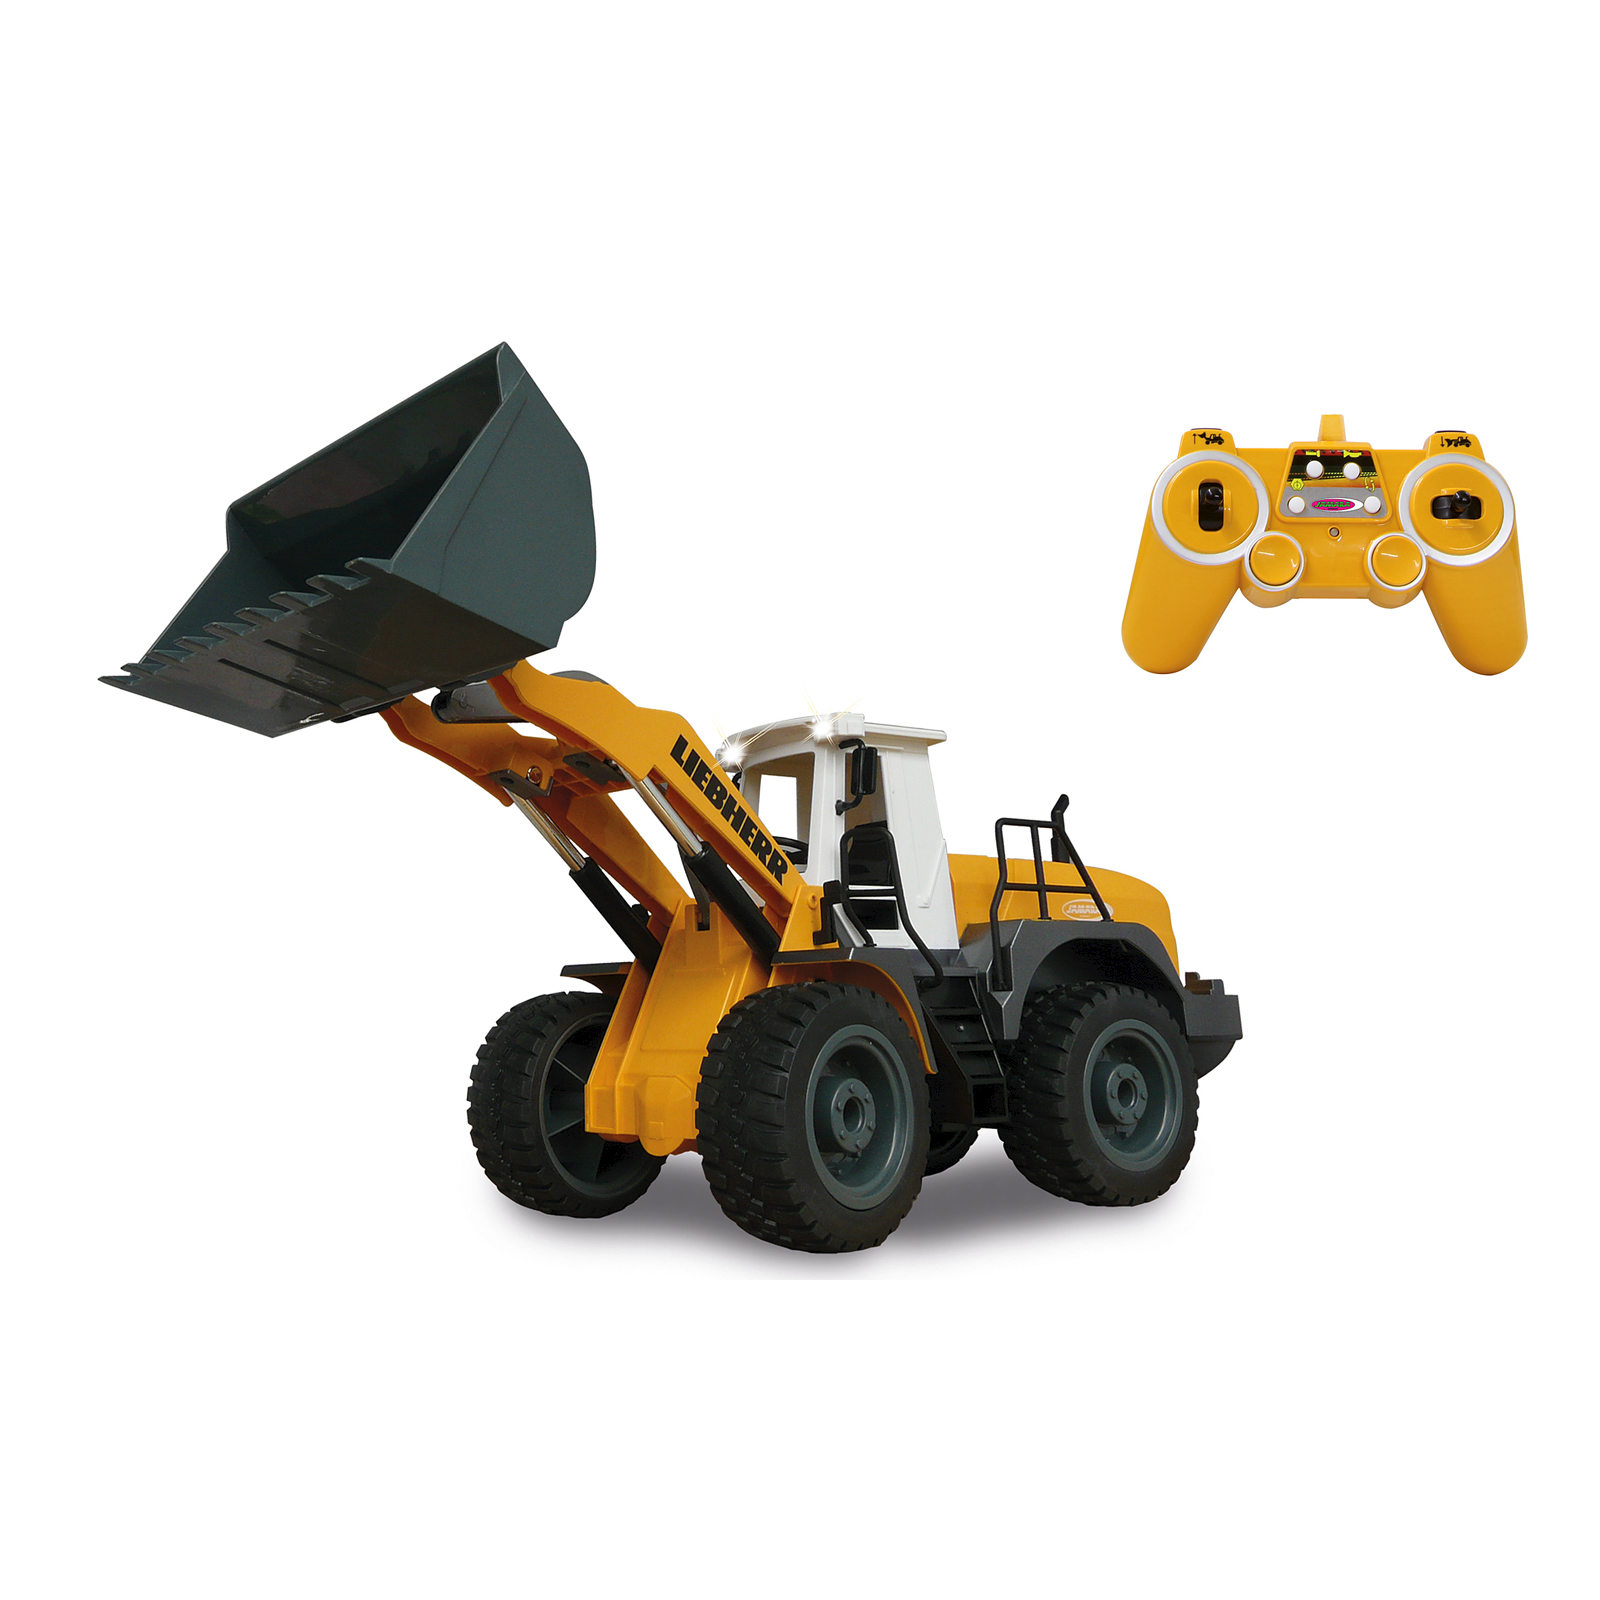 Details about Jamara Wheel Loader Liebherr 564 405007, with Remote Control